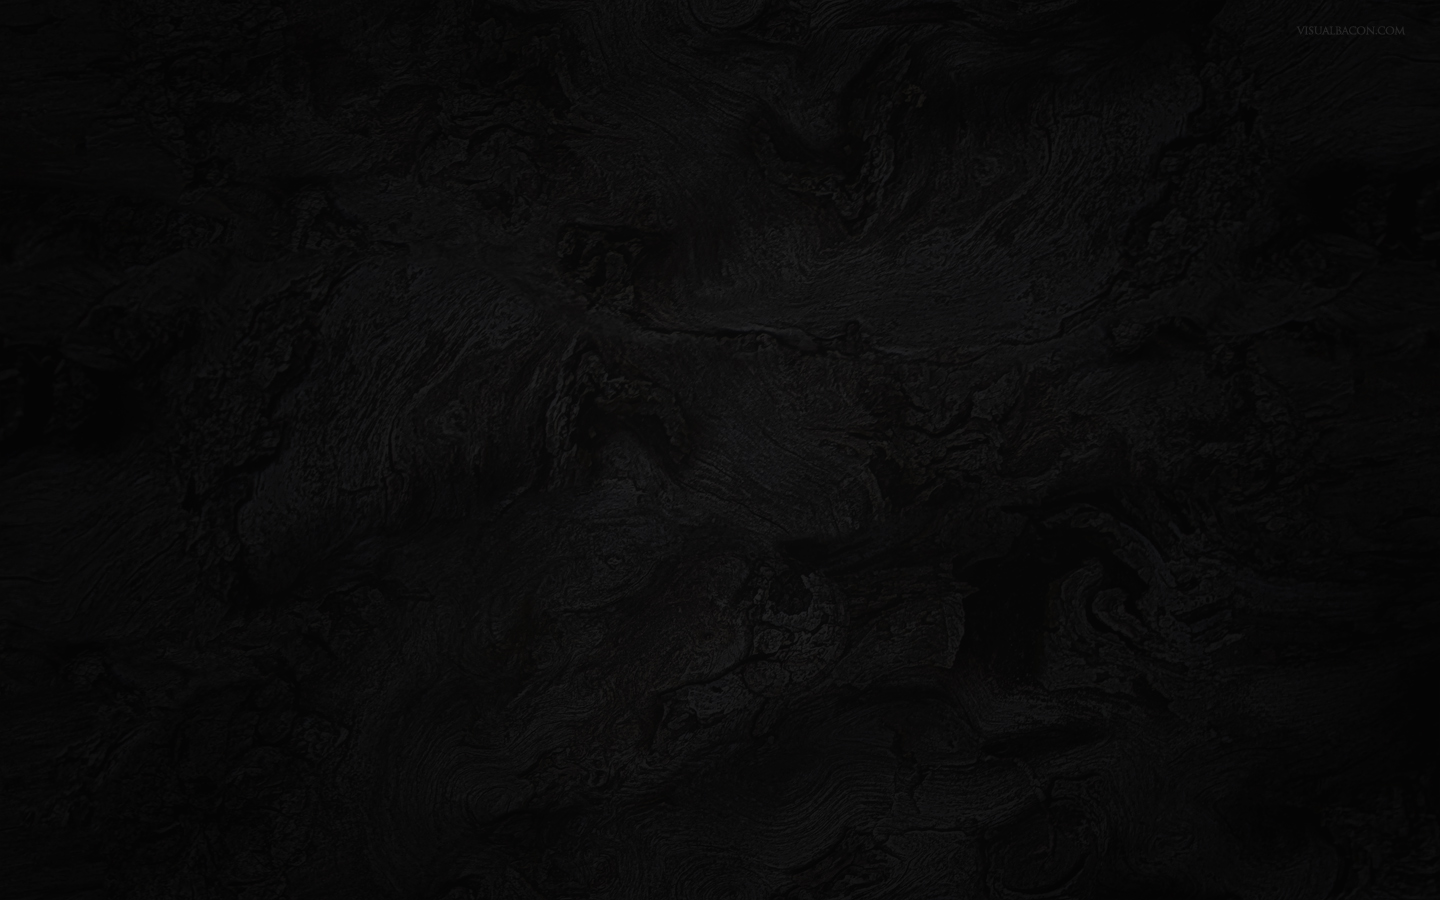 Textures Dark Gray Soft Gnarled Wood 514131 With Resolutions 1440900 1440x900